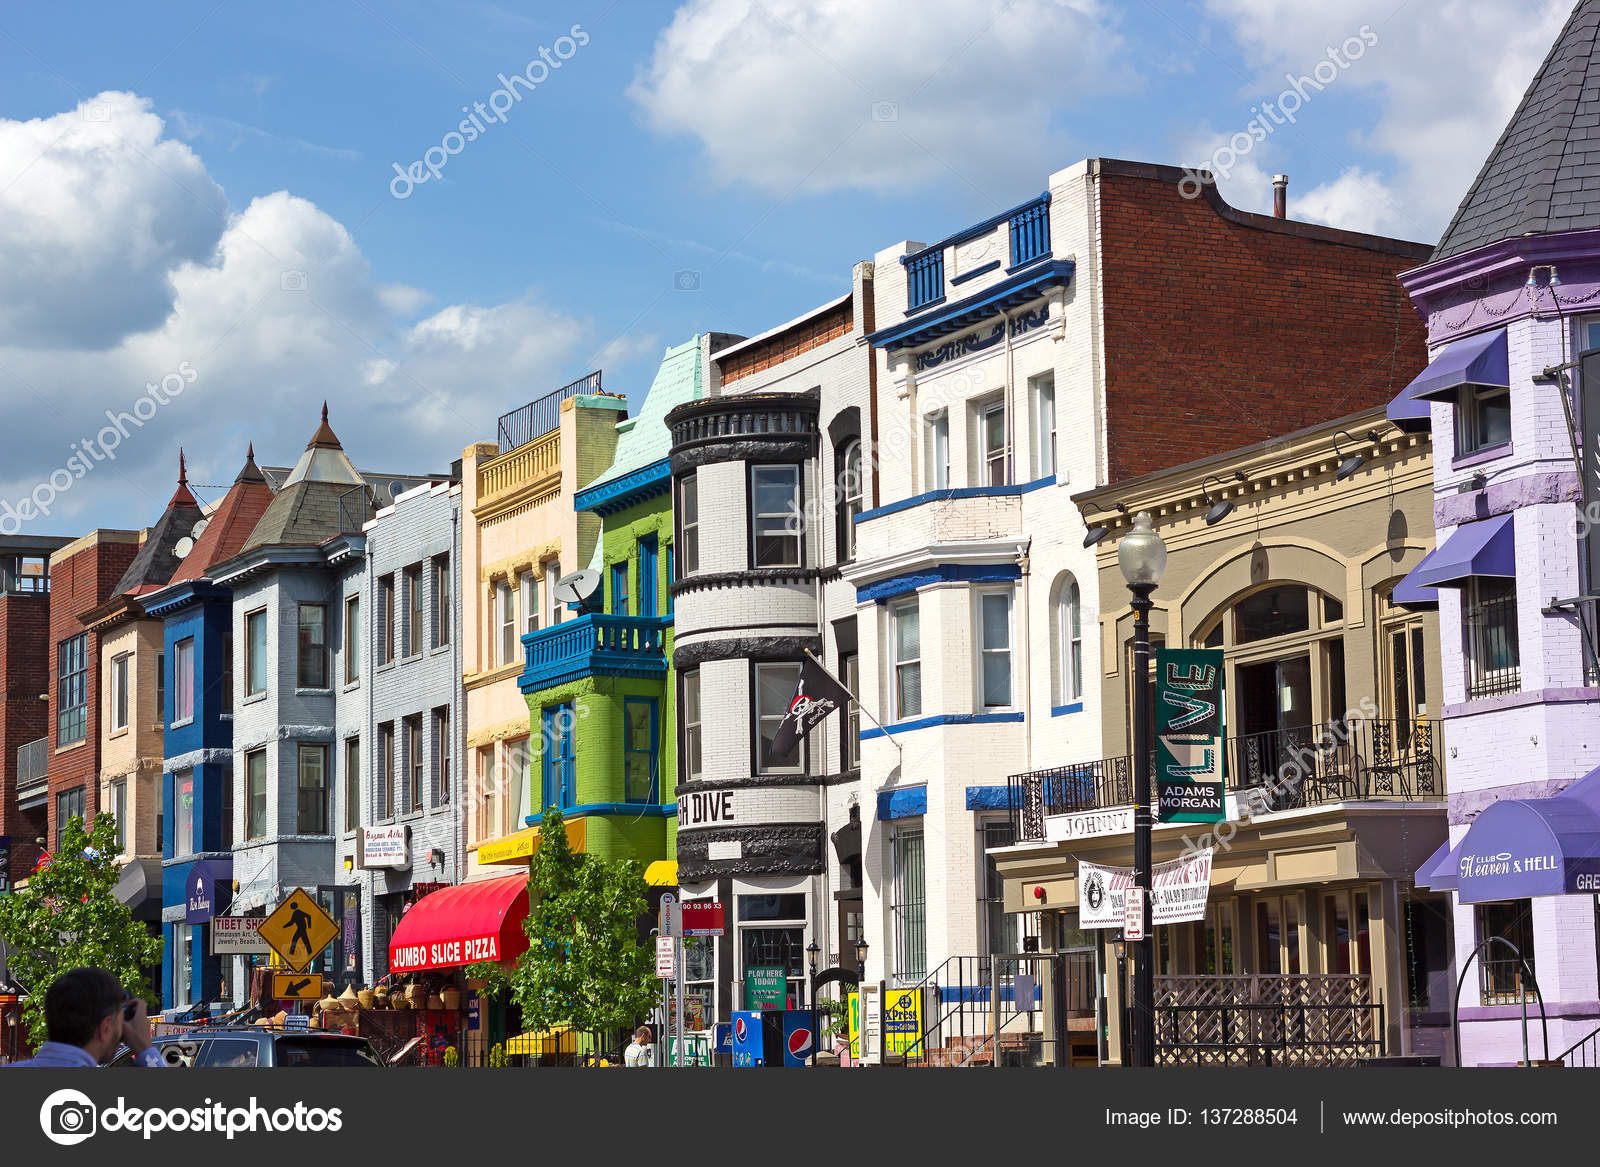 Colorful Historic Buildings In Adams Morgan Neighborhood On